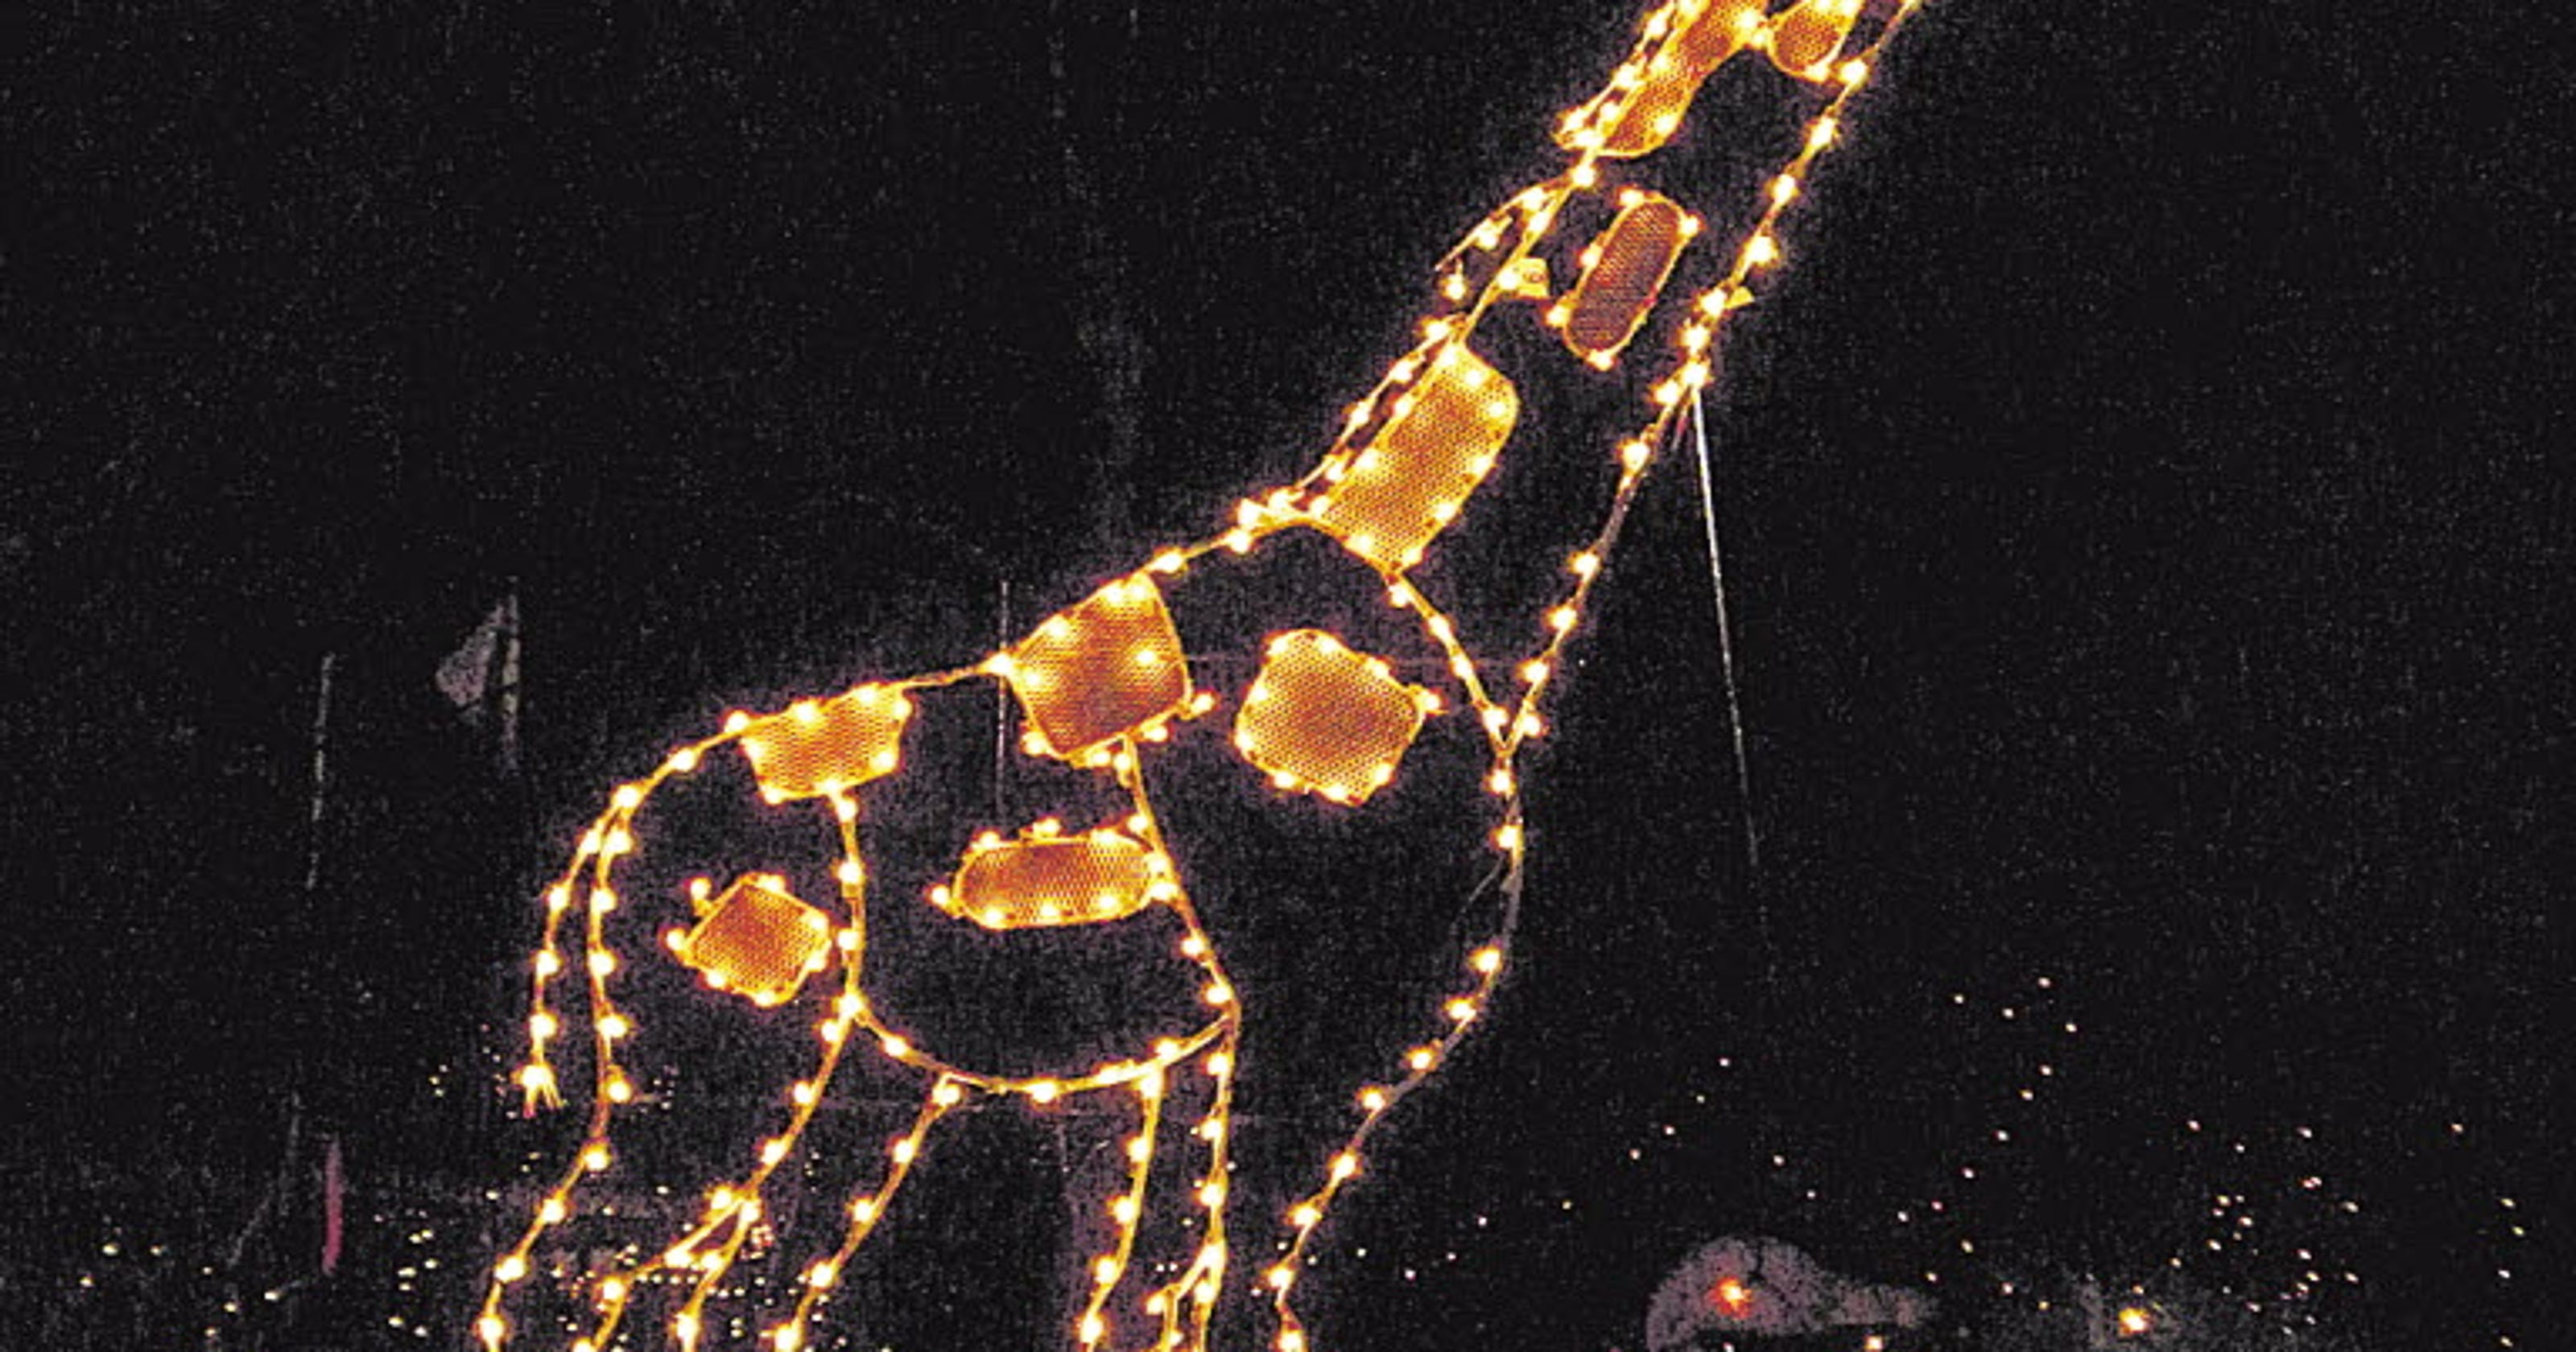 Turtle Back Zoo Christmas Lights 2019.Holiday Bucket List Fun And Unique Winter Activities In